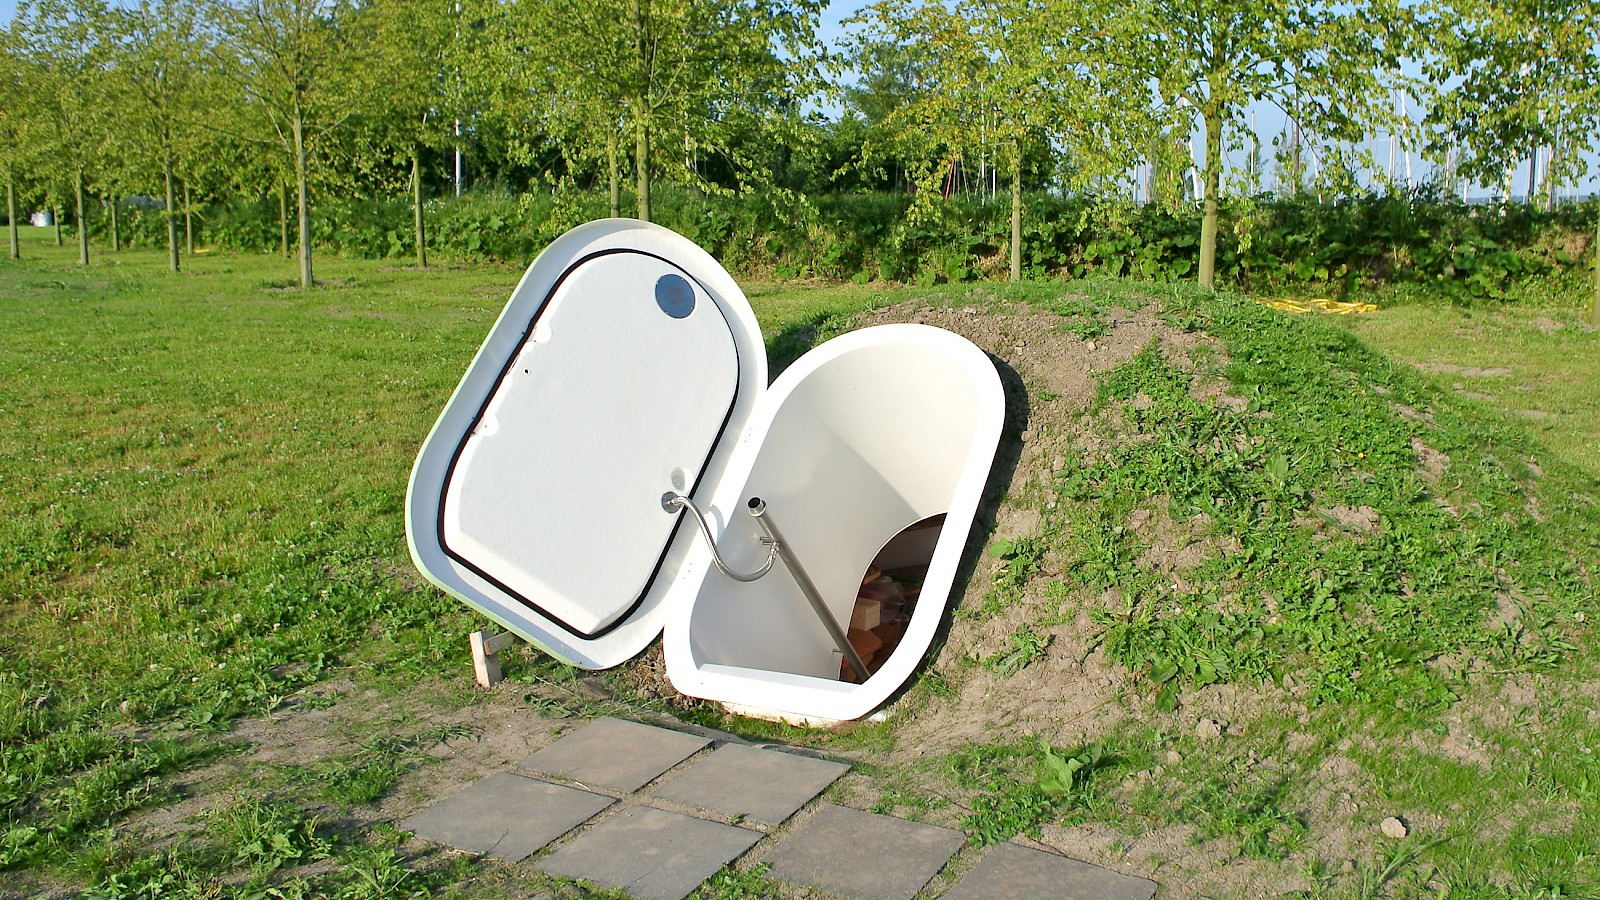 weltevree groundfridge is a pre fabricated underground cellar